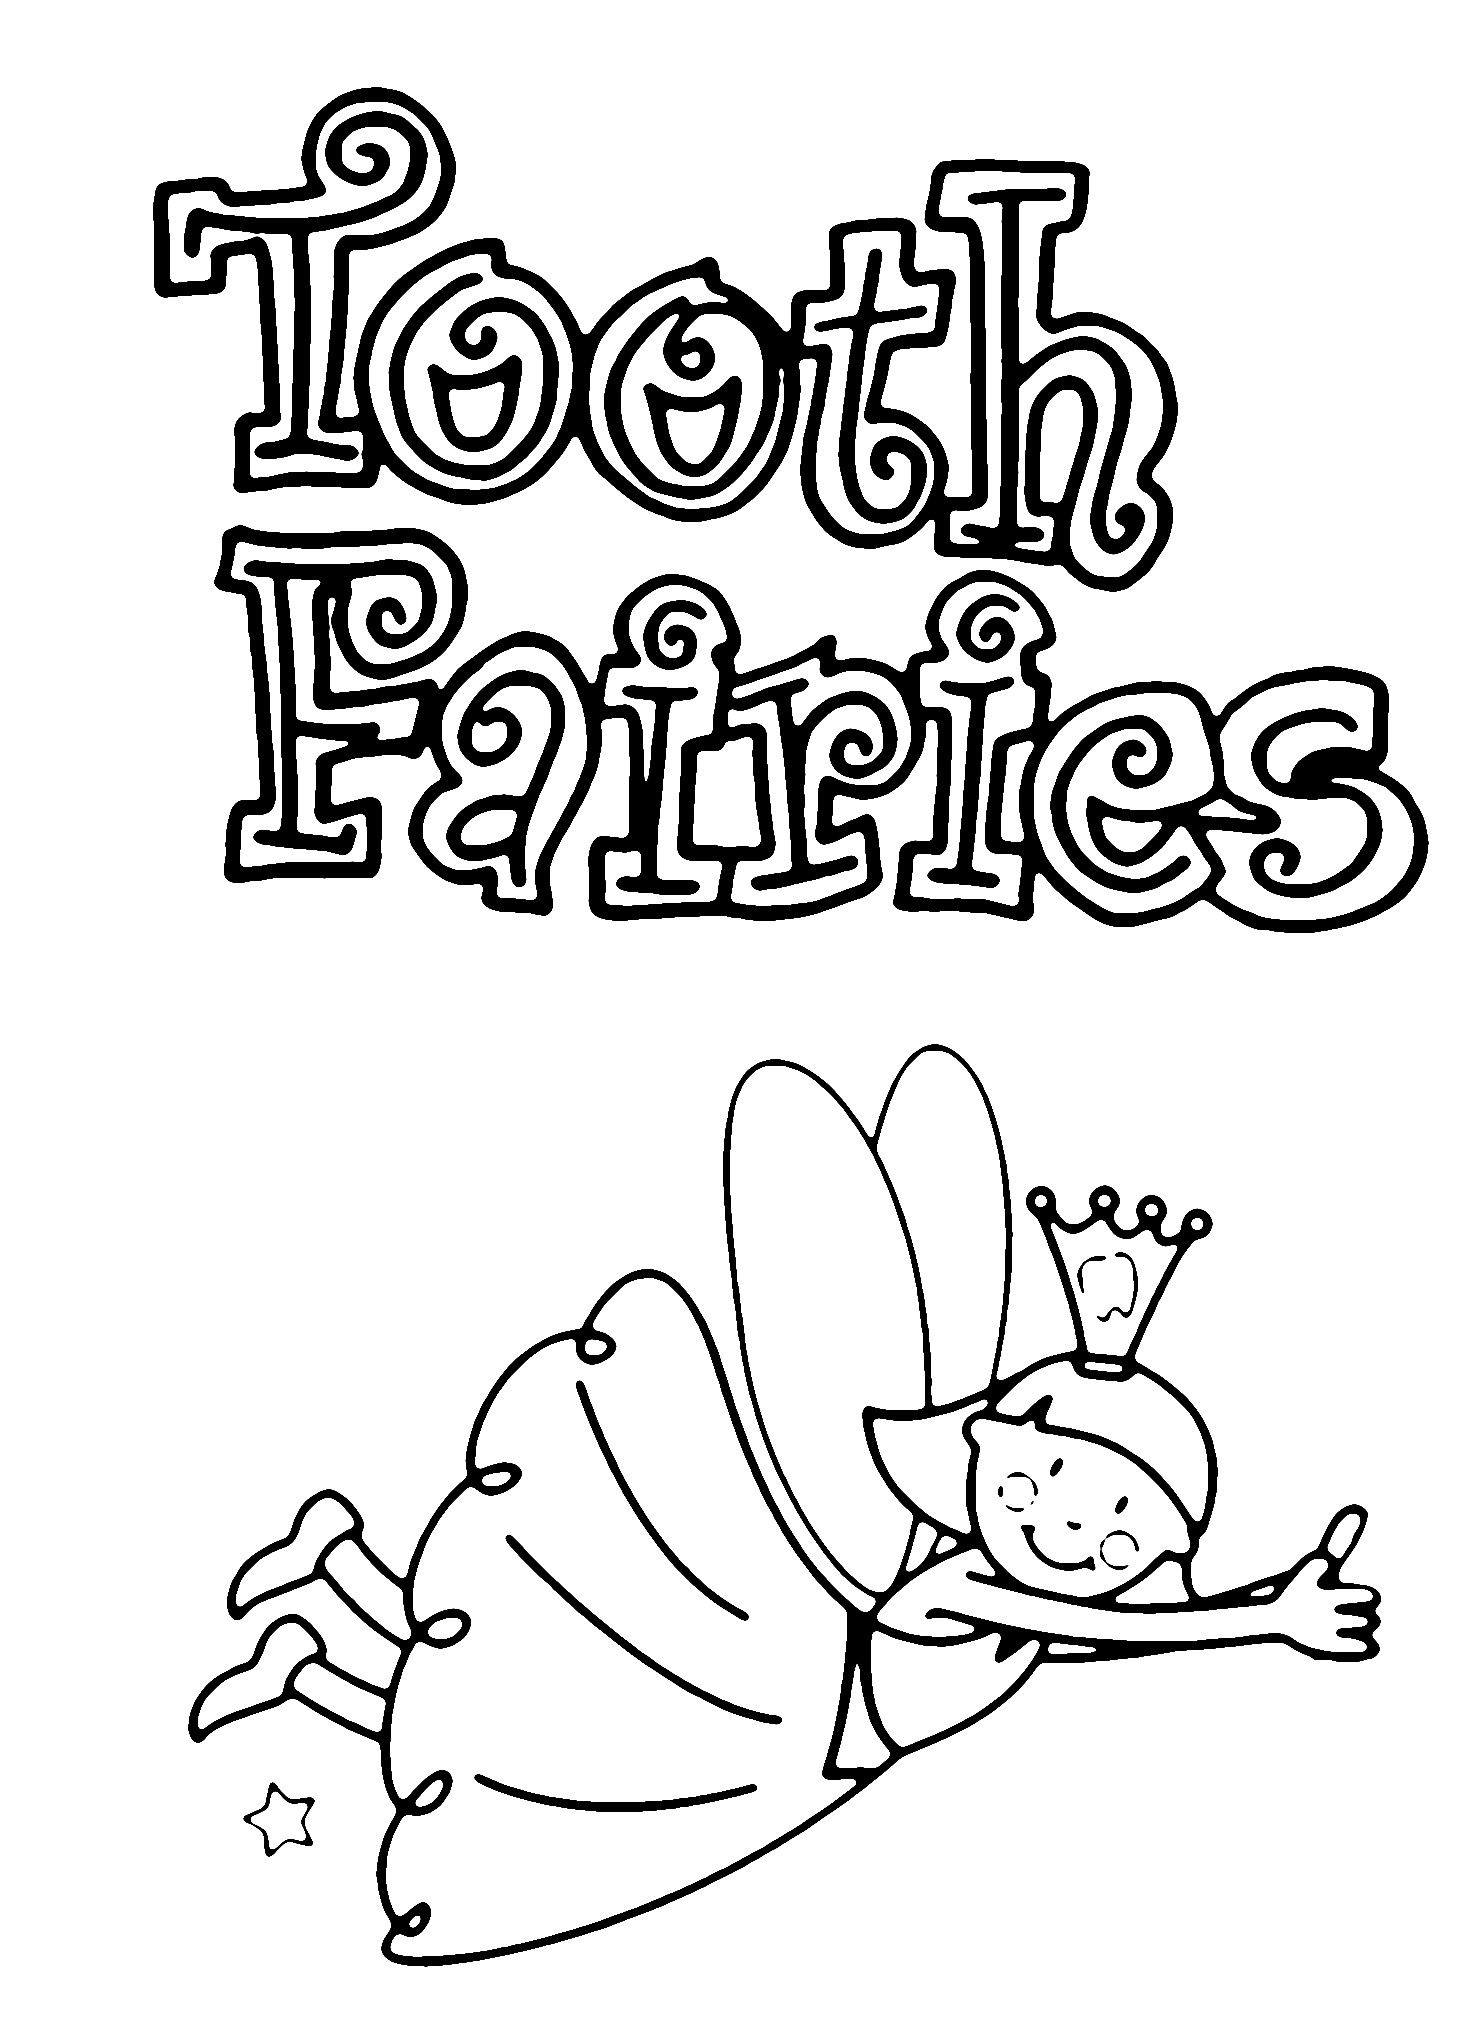 Home Of The Tooth Fairies